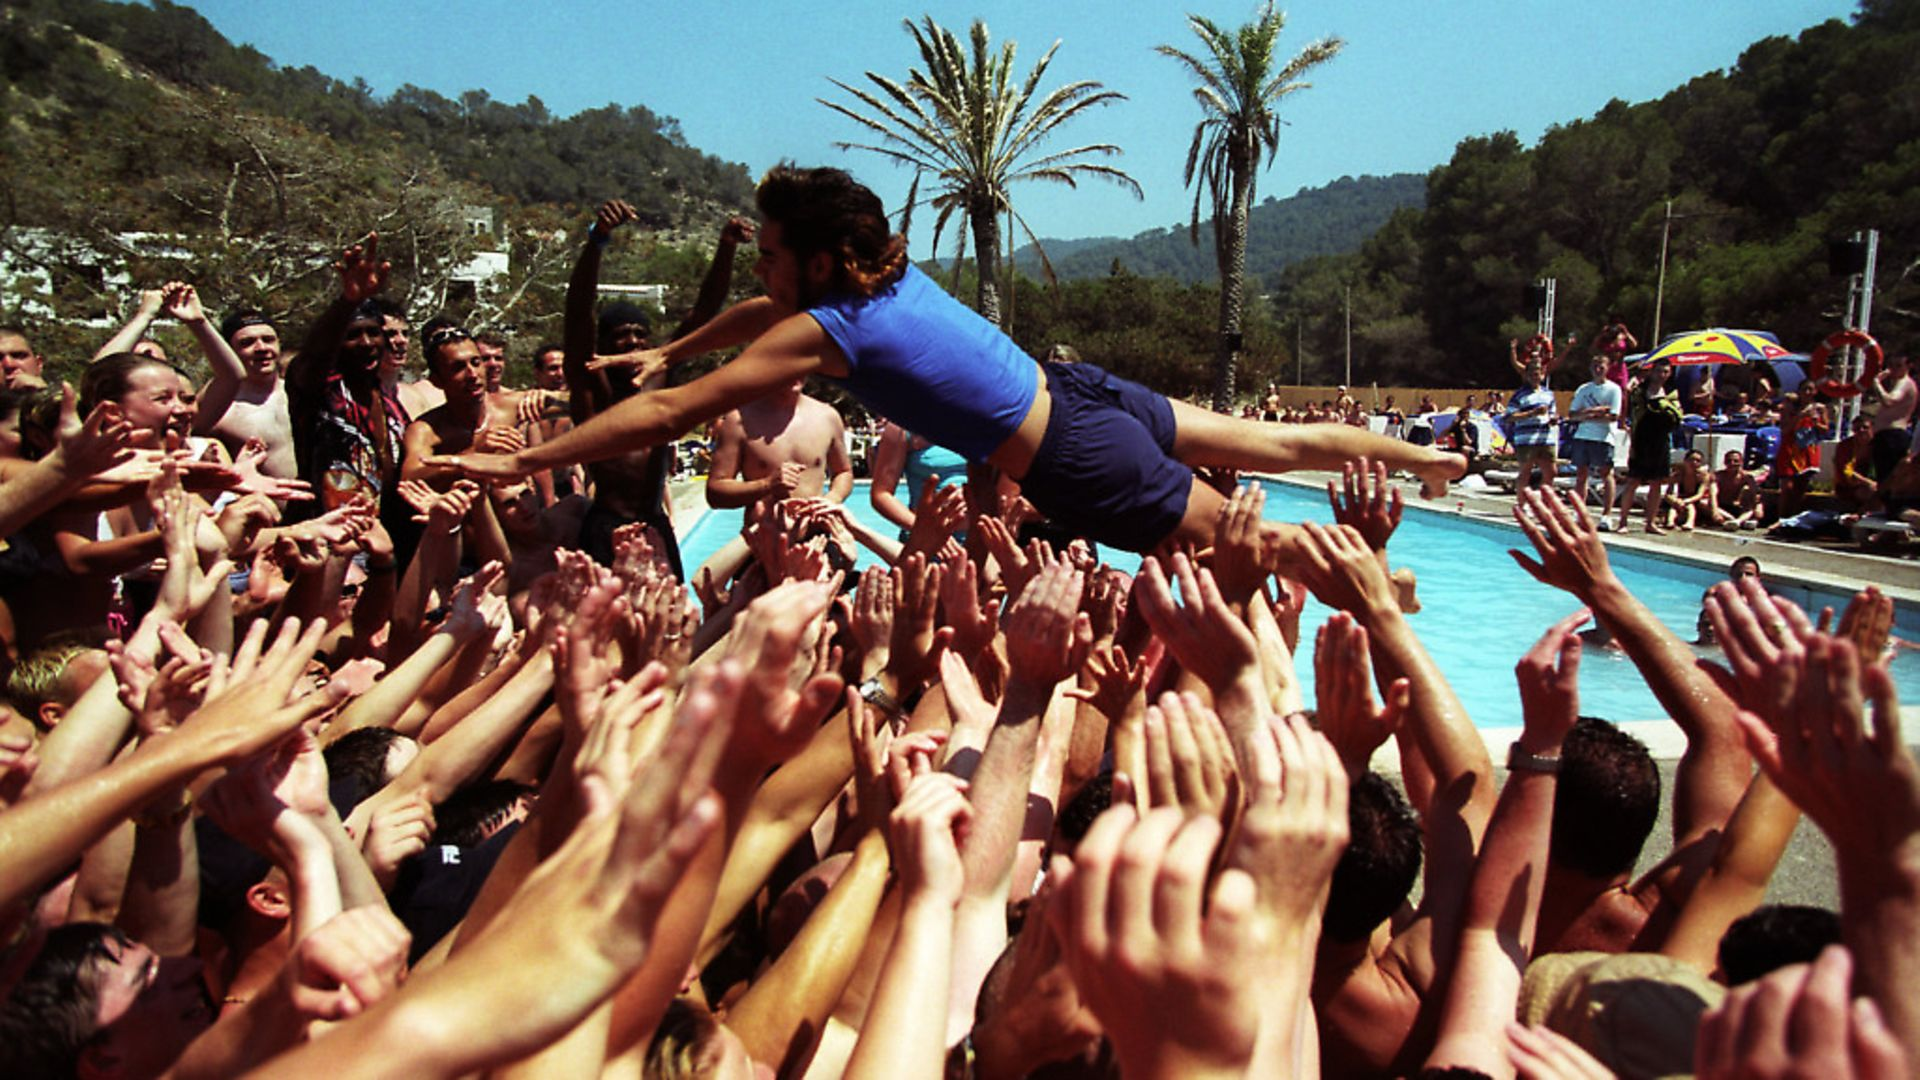 A holiday rep diving into a crowd of people, at a pool party, Club 18-30 Ibiza, 2001. (Photo by: PYMCA/Universal Images Group via Getty Images) - Credit: Universal Images Group via Getty